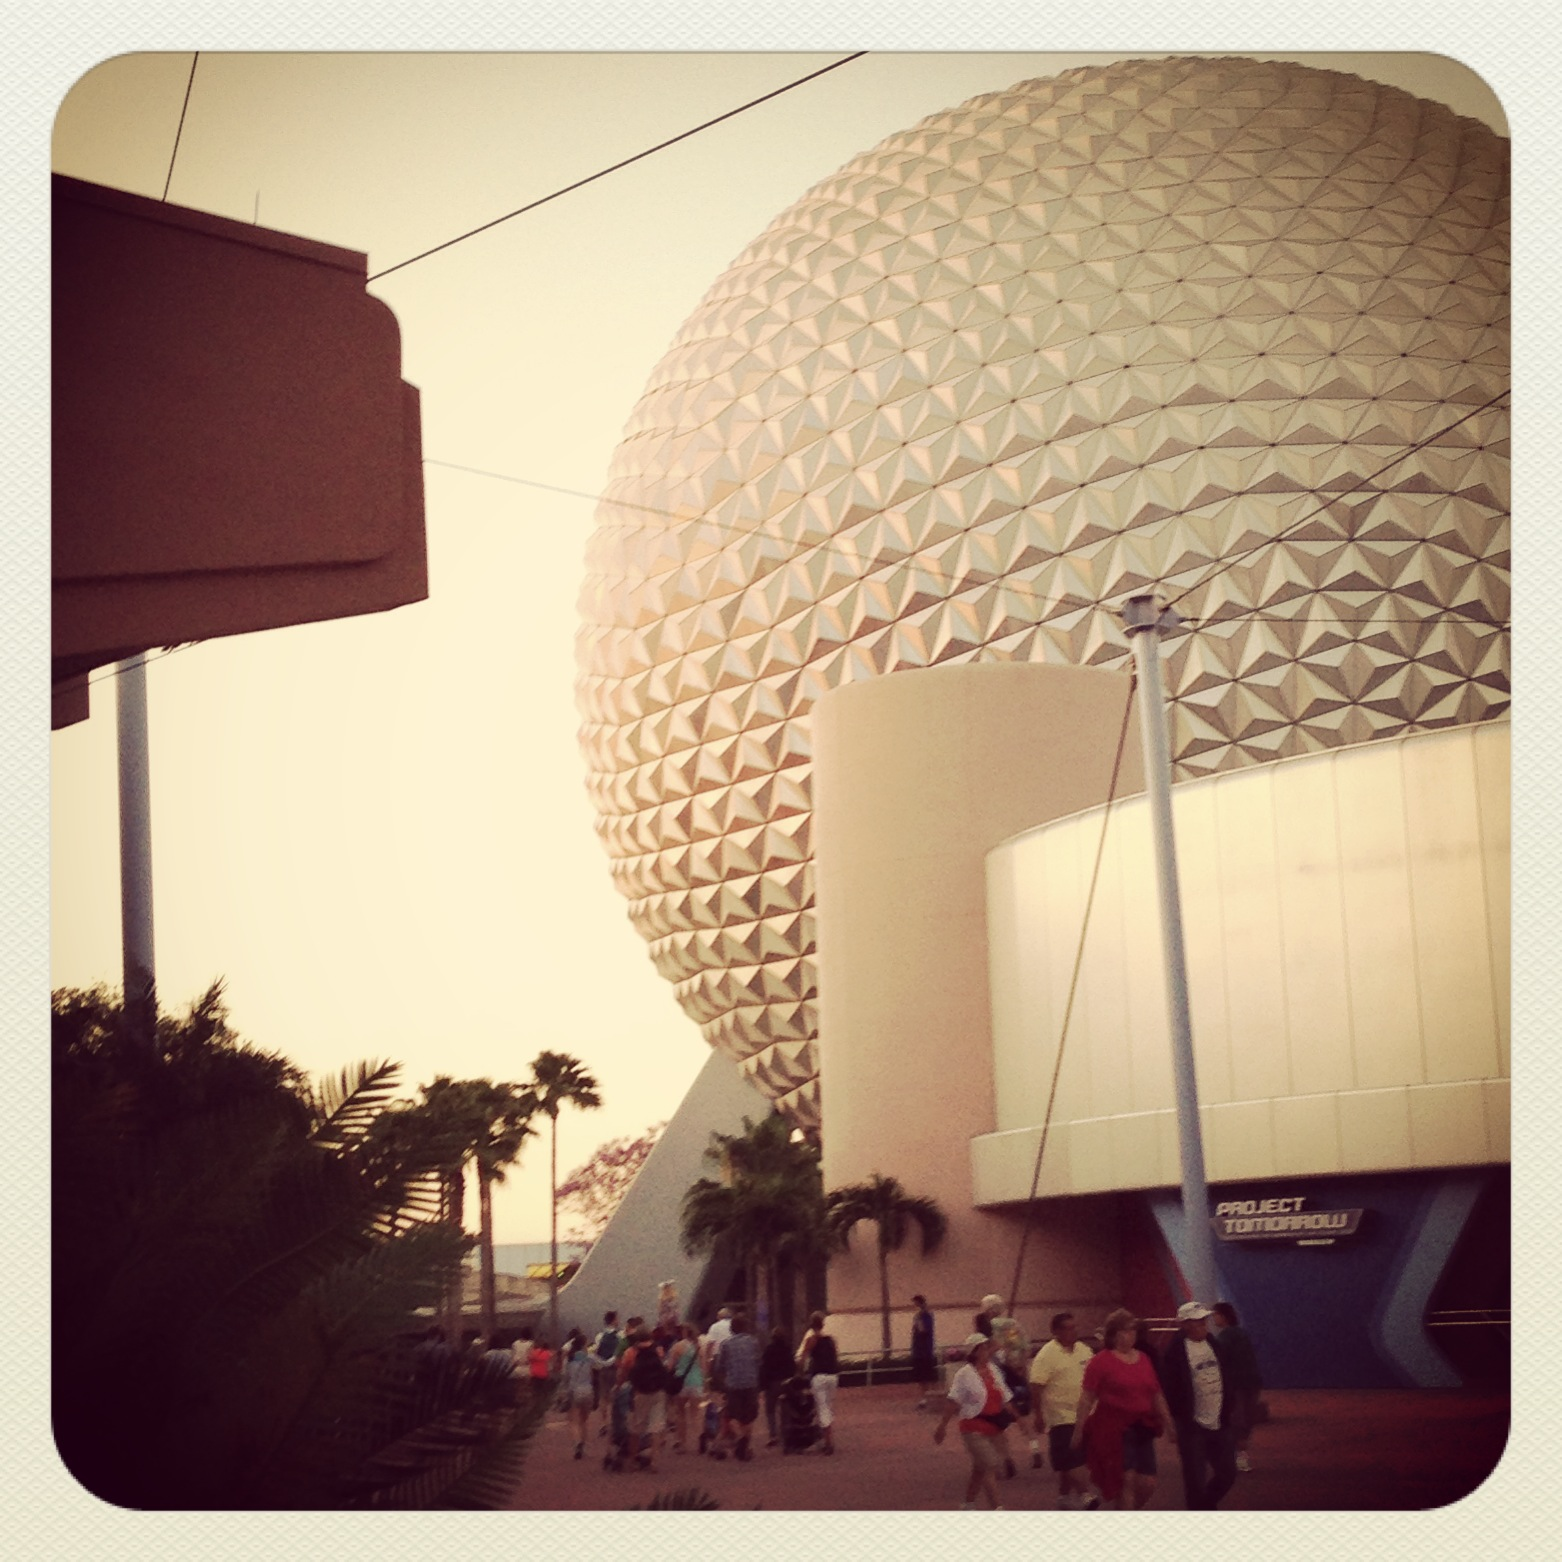 First Visit to Epcot